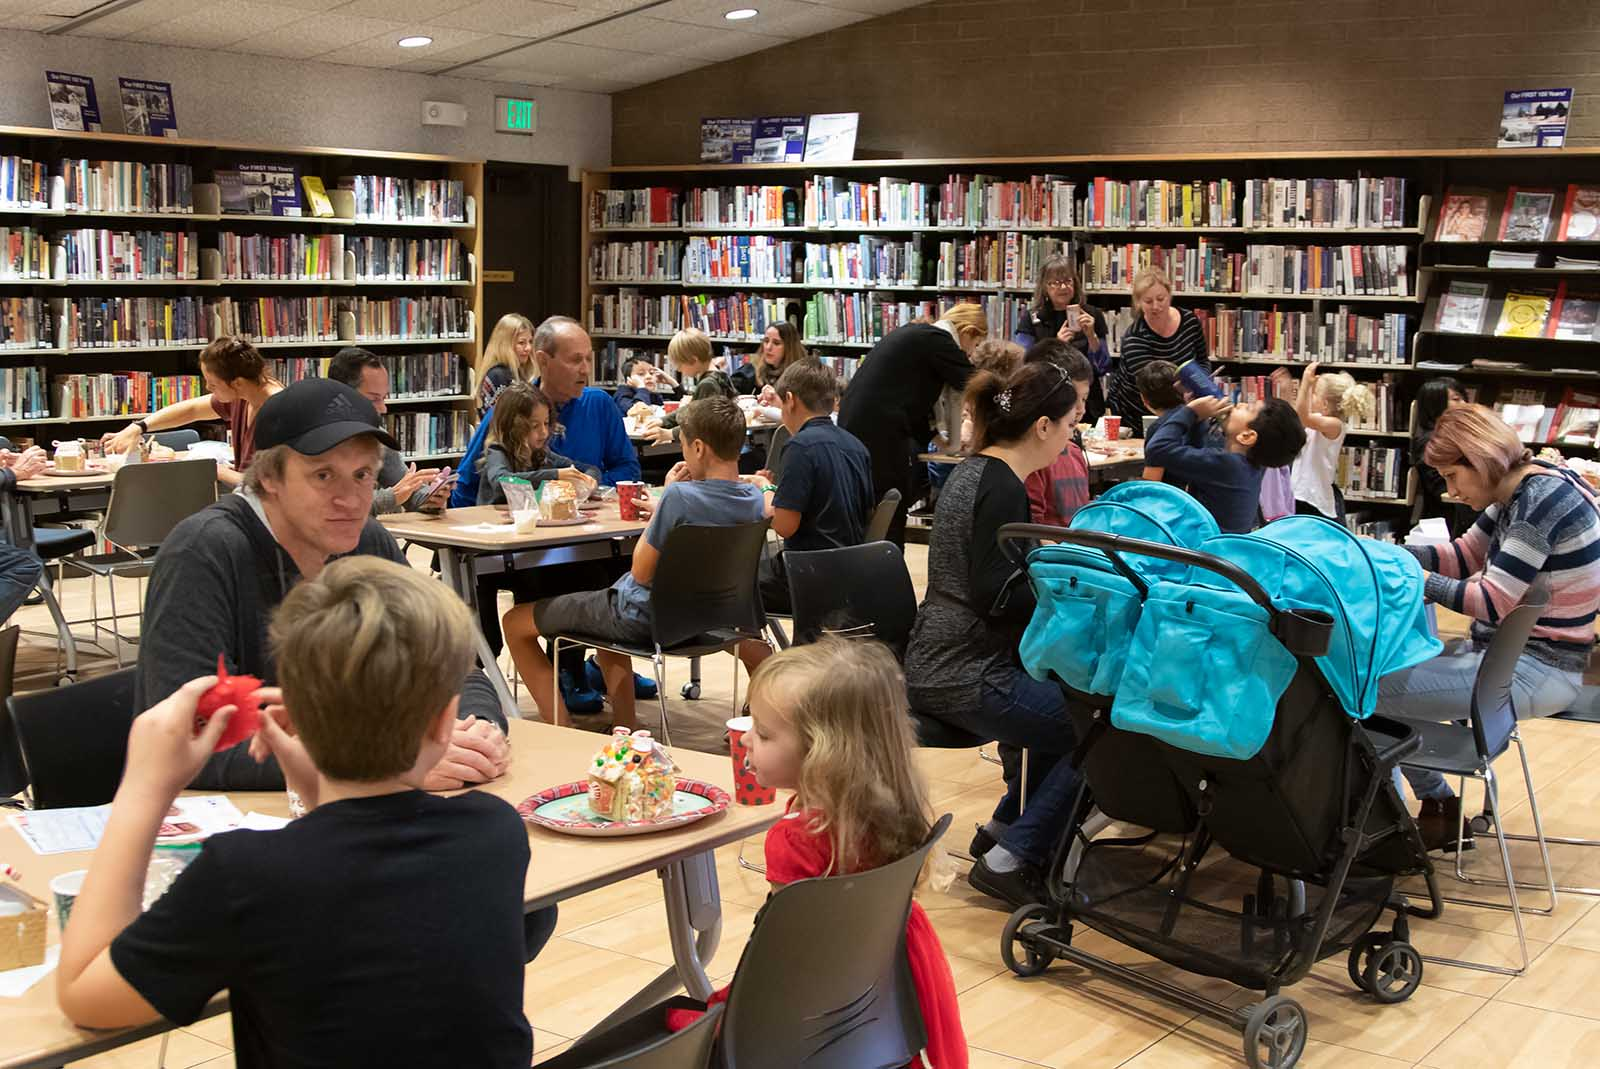 Gingerbread houses at Chevy Chase Library